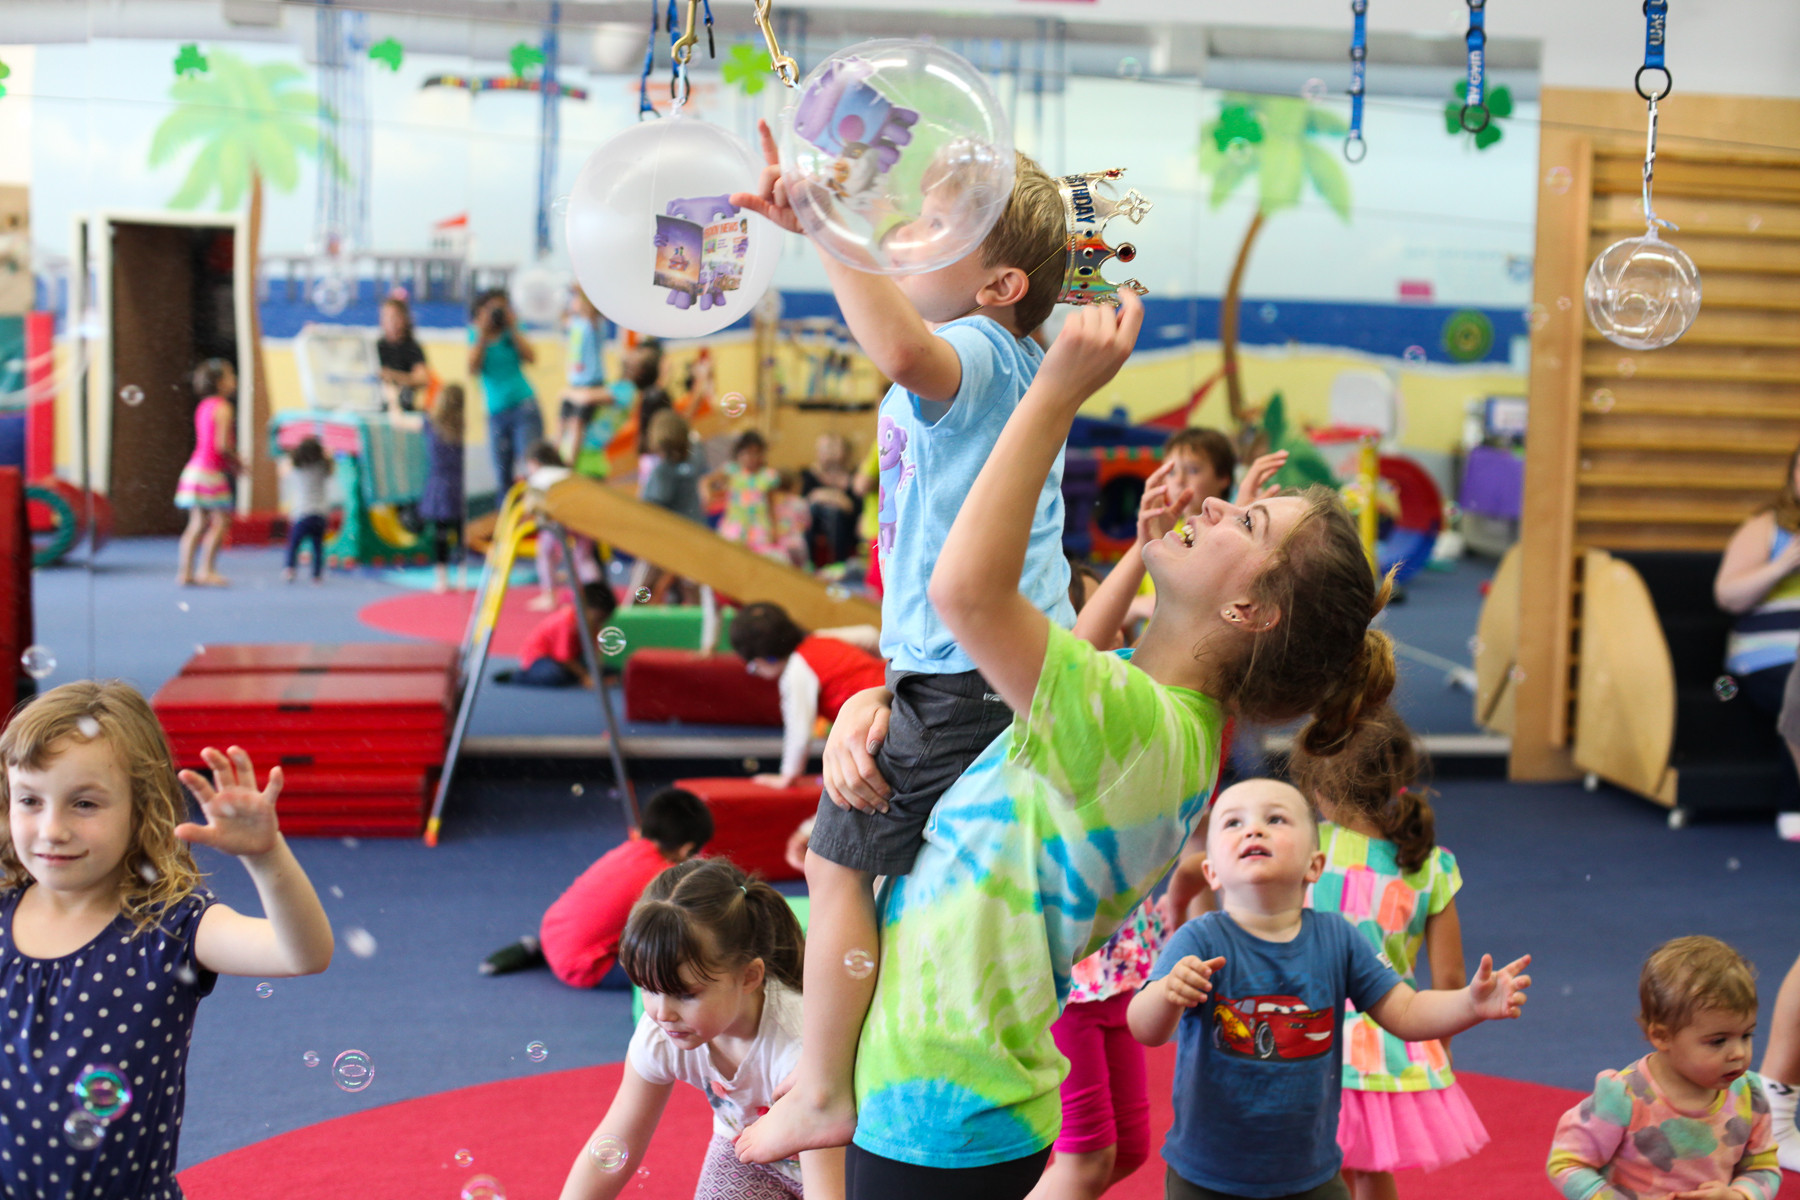 Best ideas about My Gym Birthday Party . Save or Pin Best Kids Birthday Party Location 2016 My Gym Now.